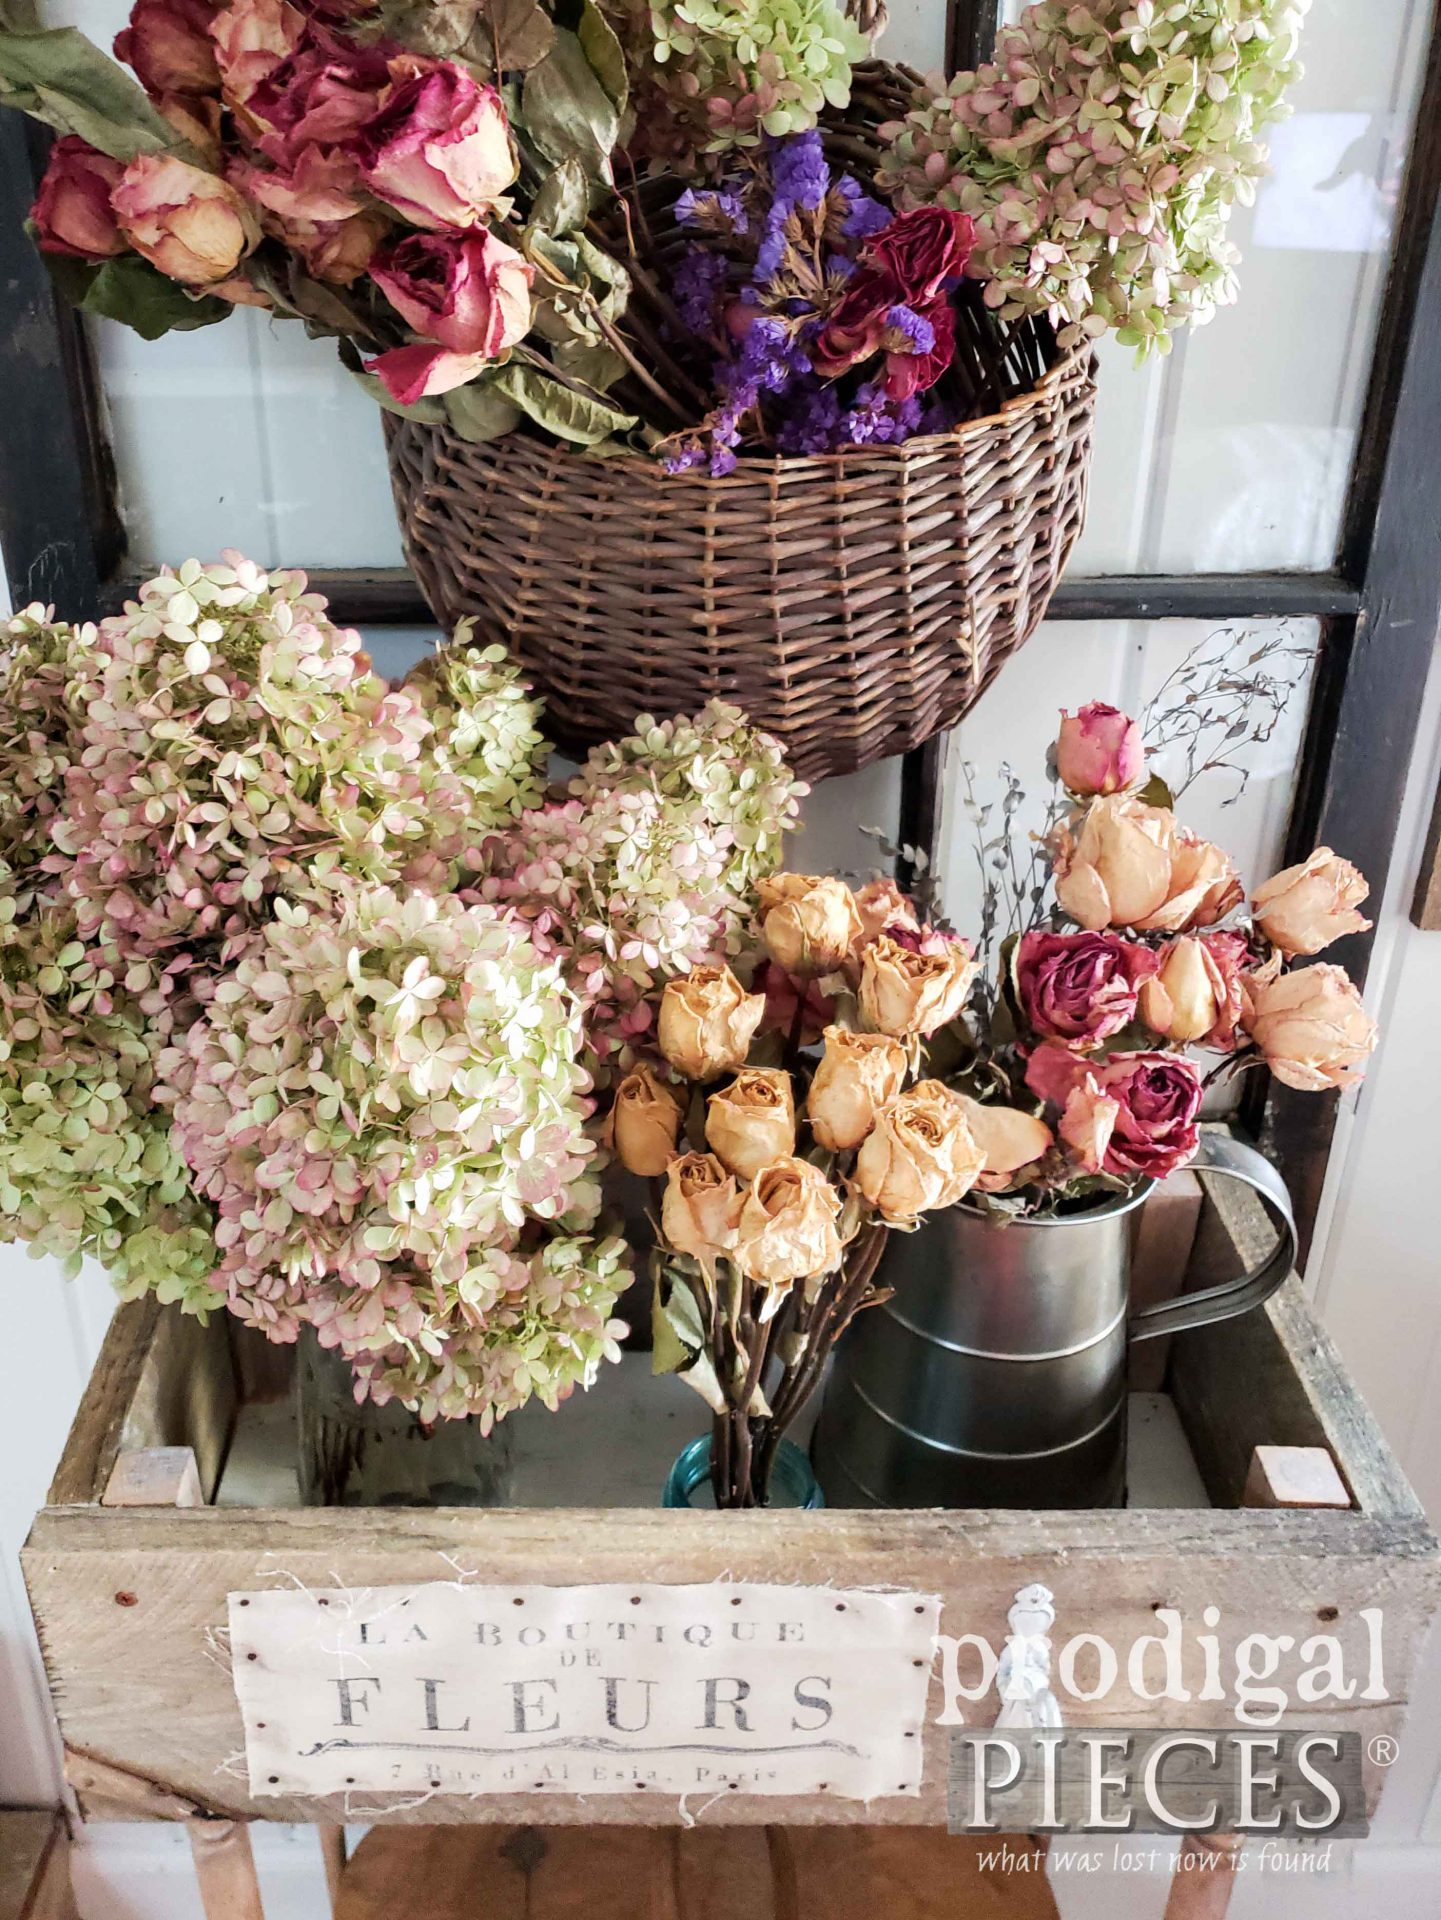 DIY Dried Flower Display of Limelight Hydrangea and Roses by Larissa of Prodigal Pieces | prodigalpieces.com #prodigalpieces #flowers #farmhouse #home #homedecor